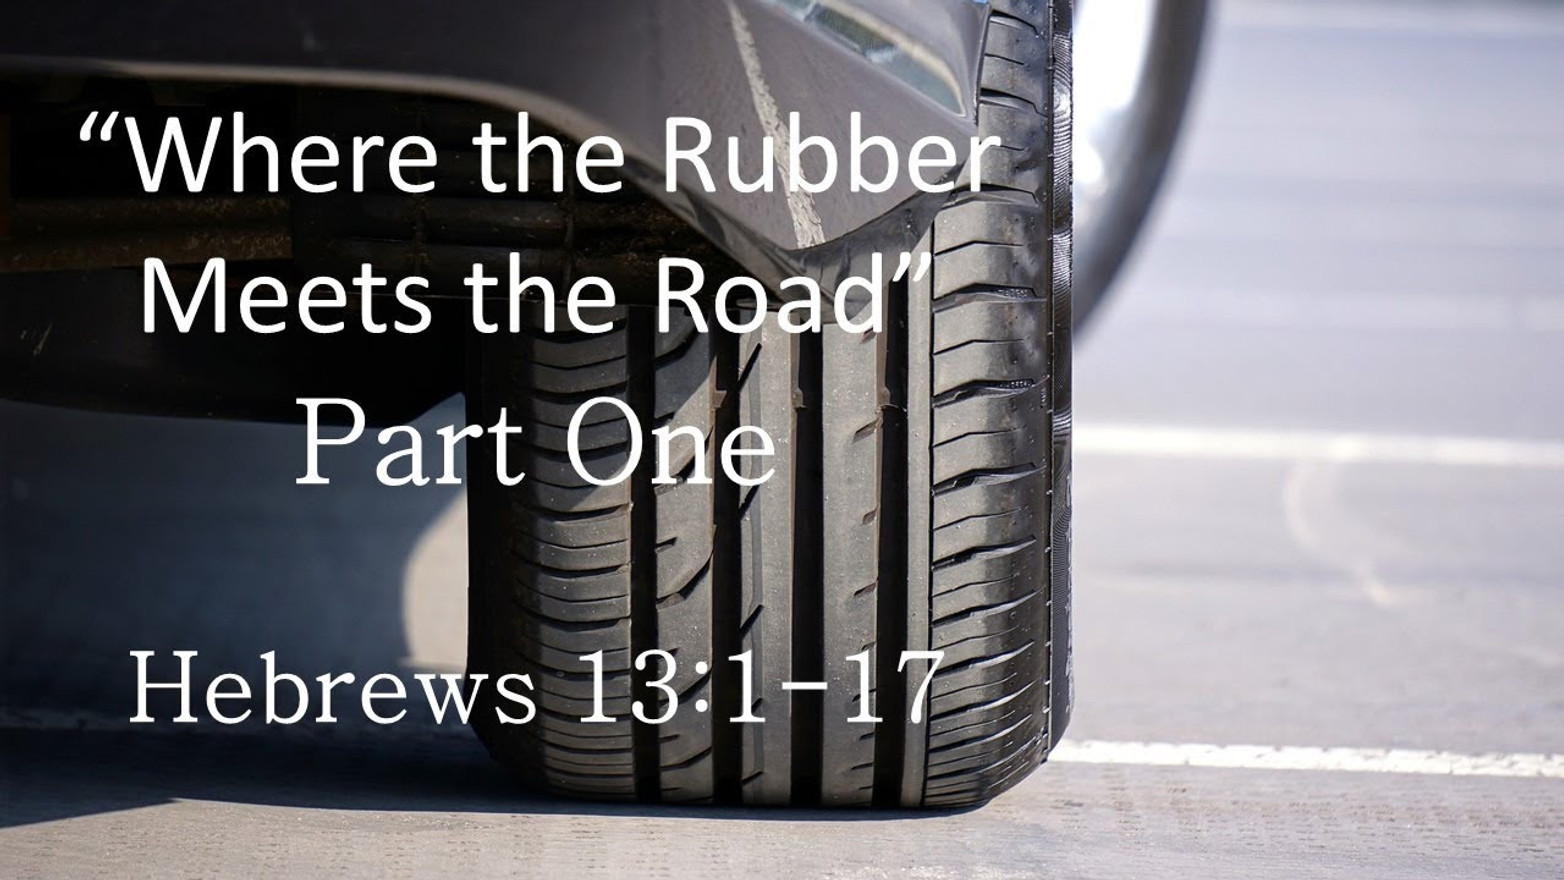 Where The Rubber Meets The Road (Part One) (Hebrews 13:1-17)